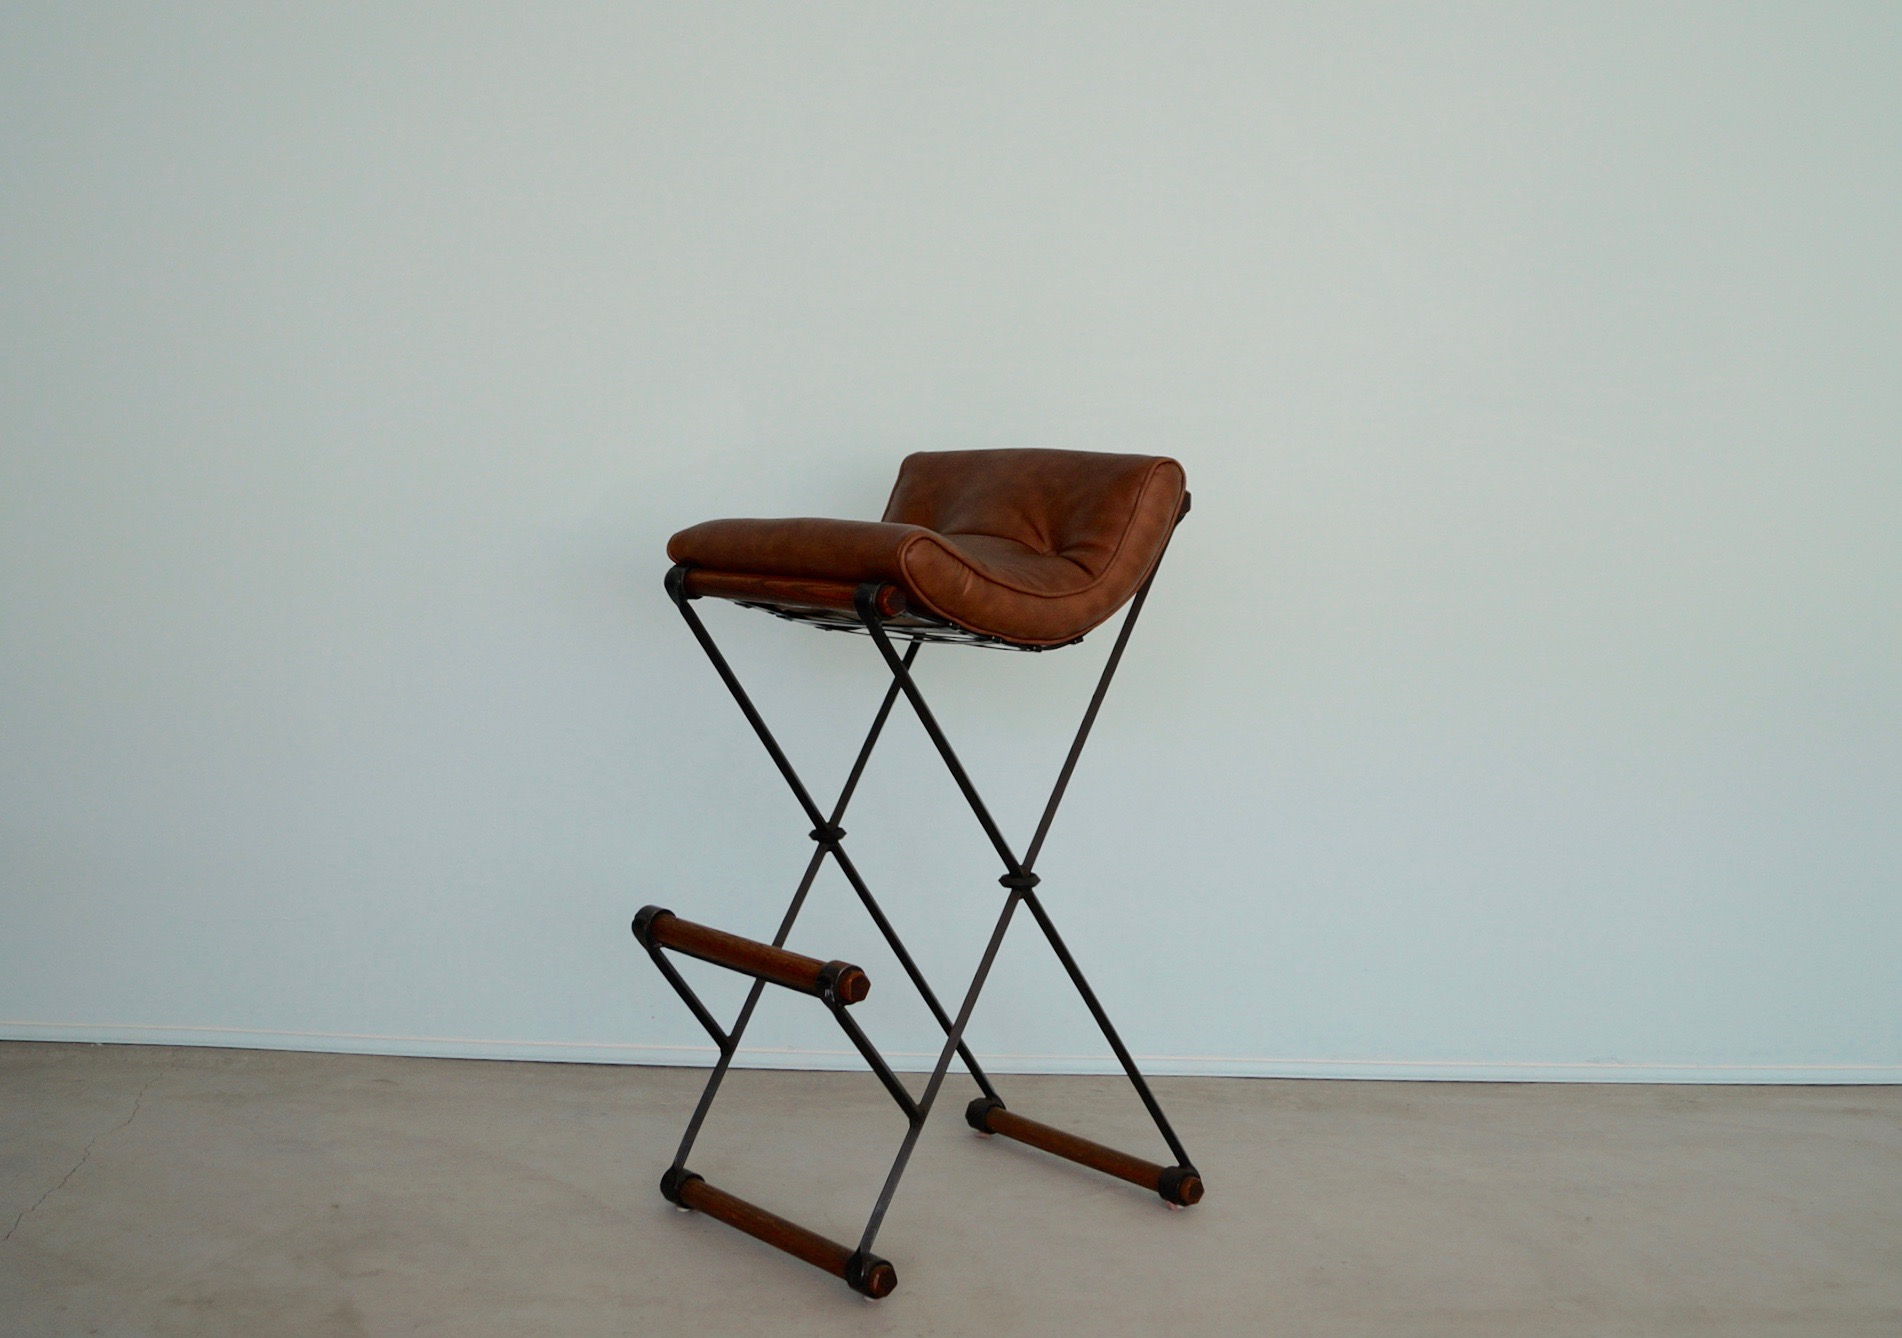 Brilliant Bar Stool By Cleo Baldon Unemploymentrelief Wooden Chair Designs For Living Room Unemploymentrelieforg